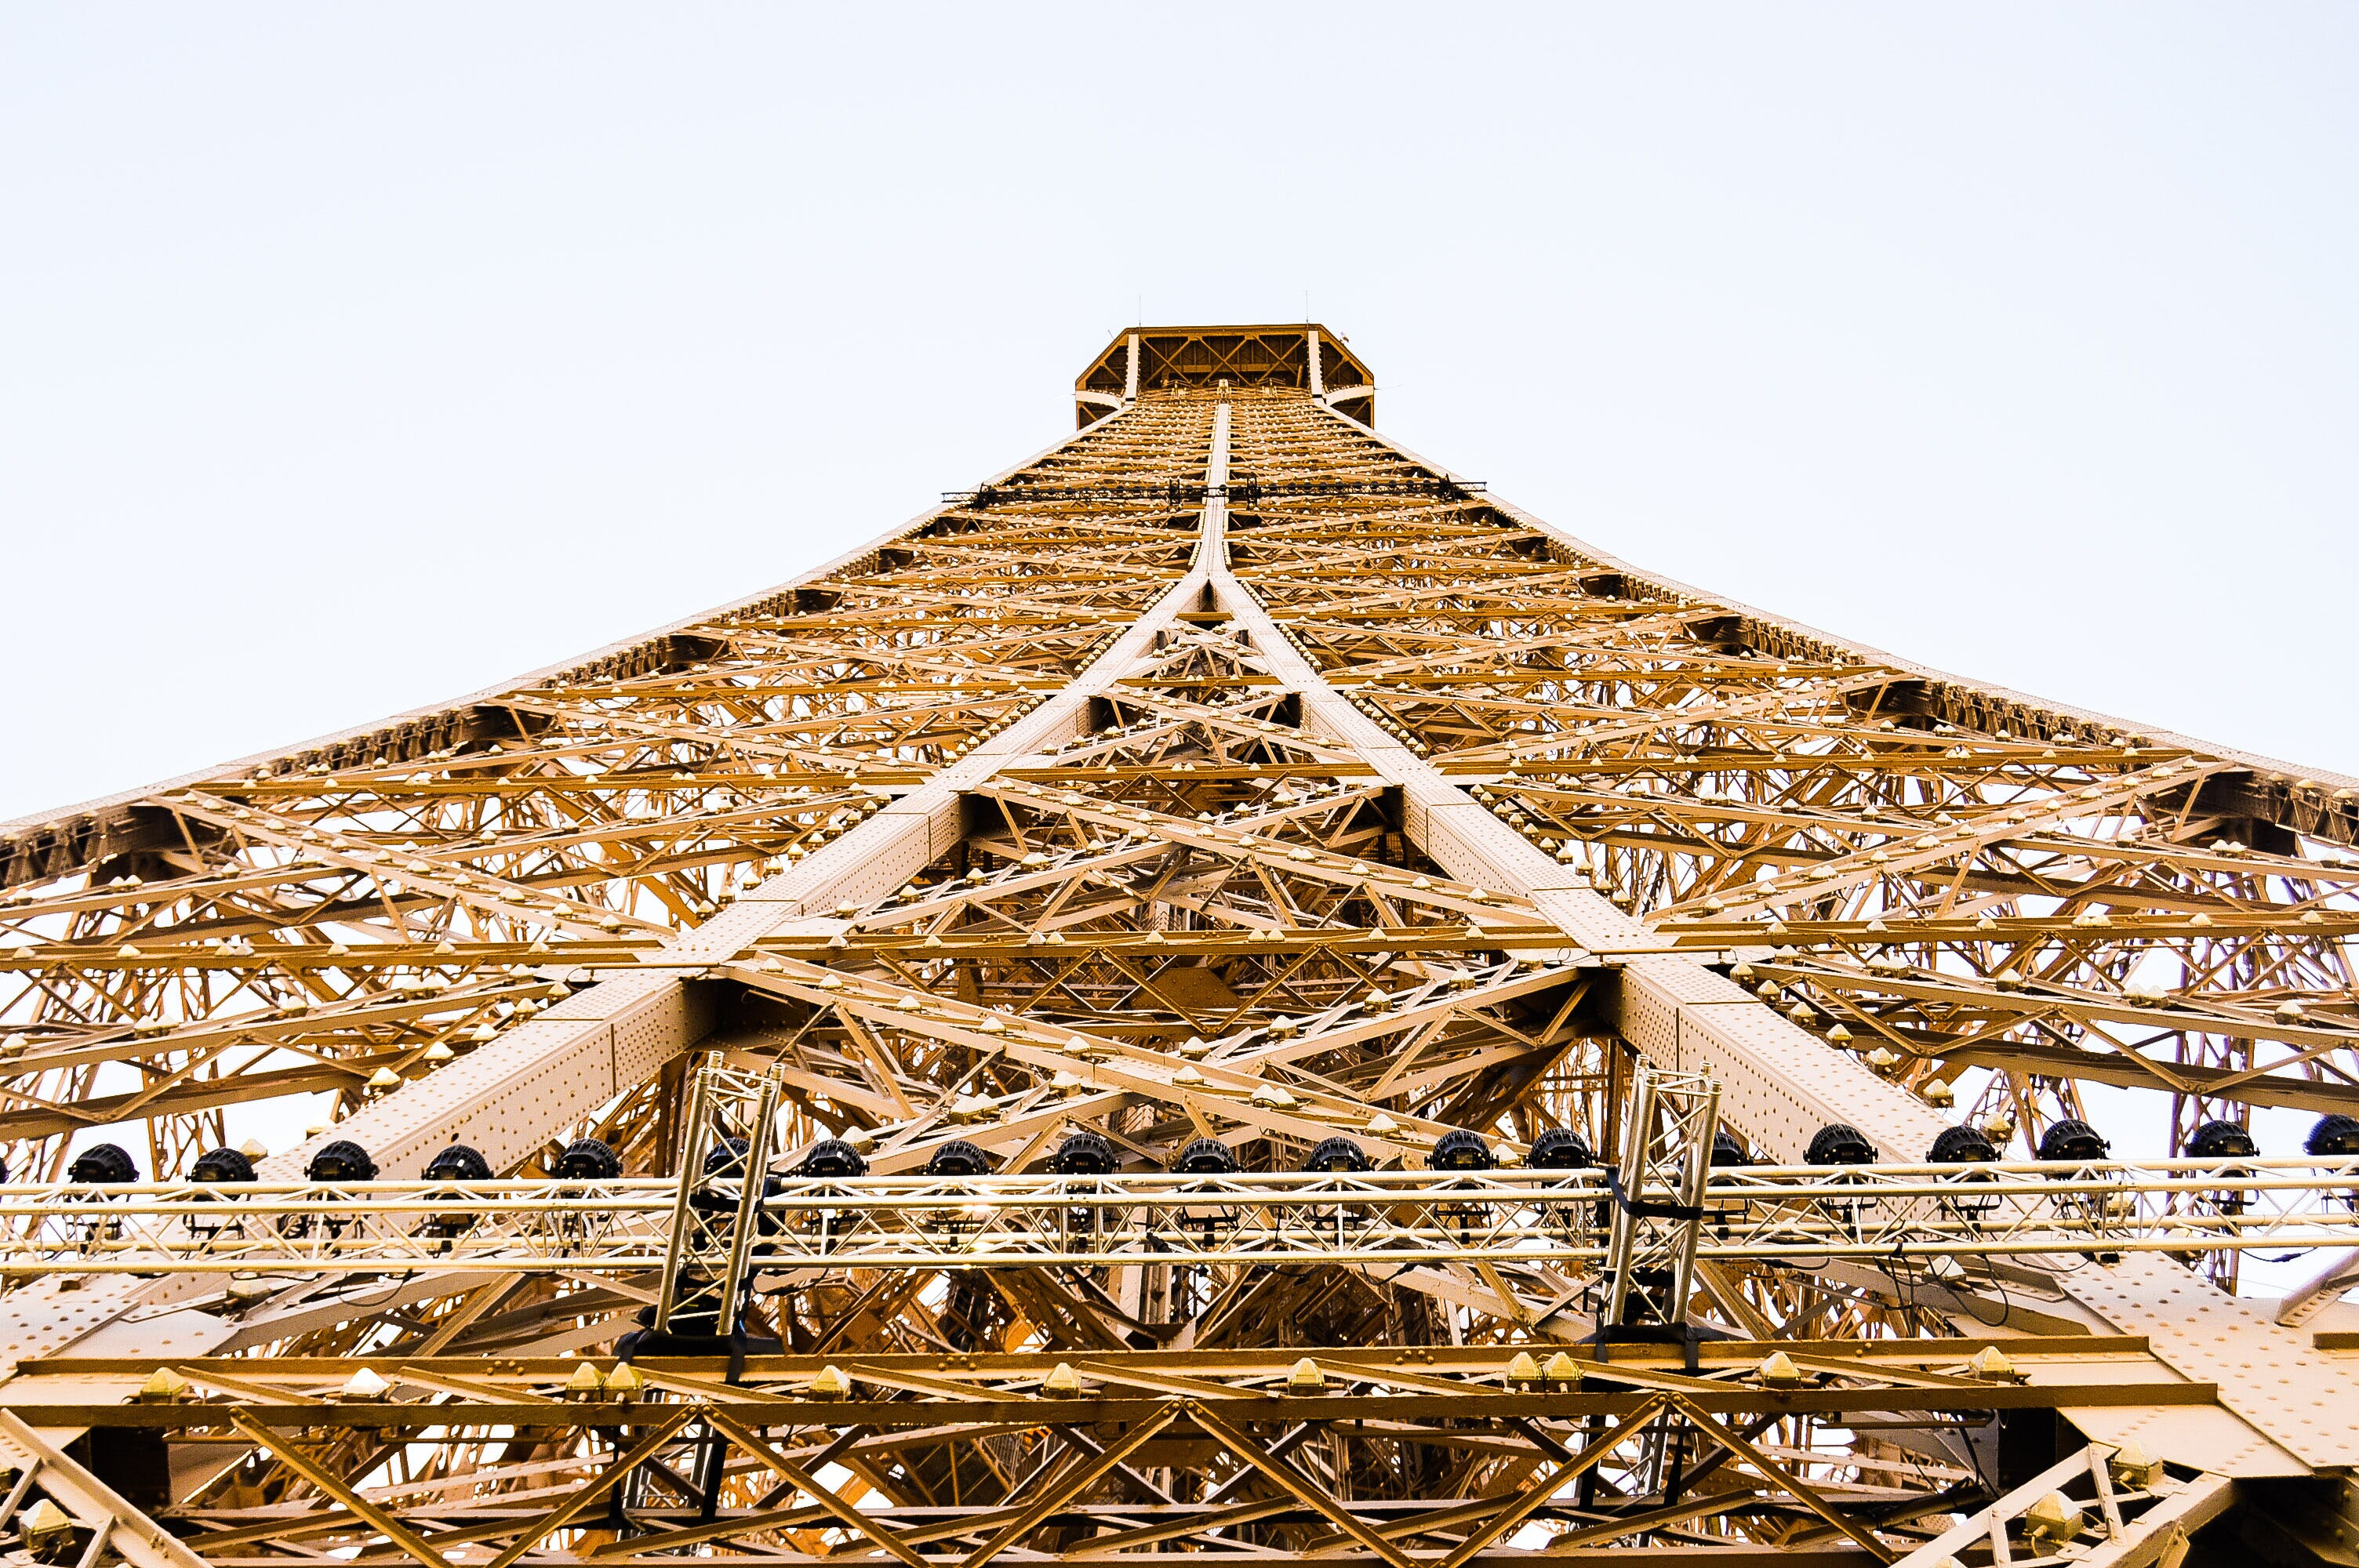 Eiffel Tower in Worm Hole View